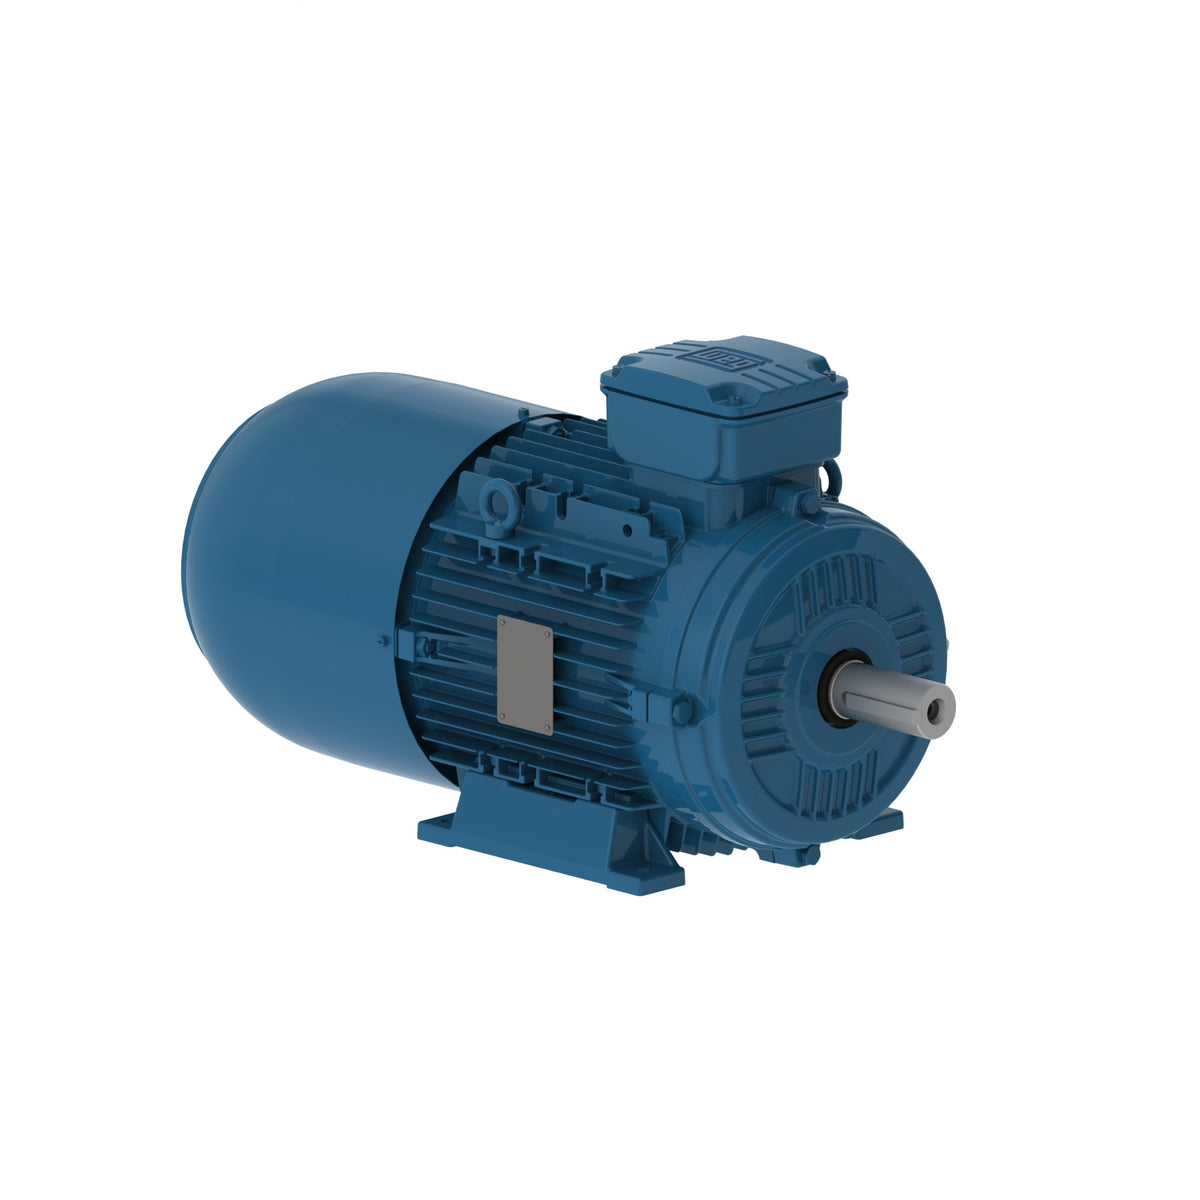 IEC FRAME SINGLE PHASE MOTORS